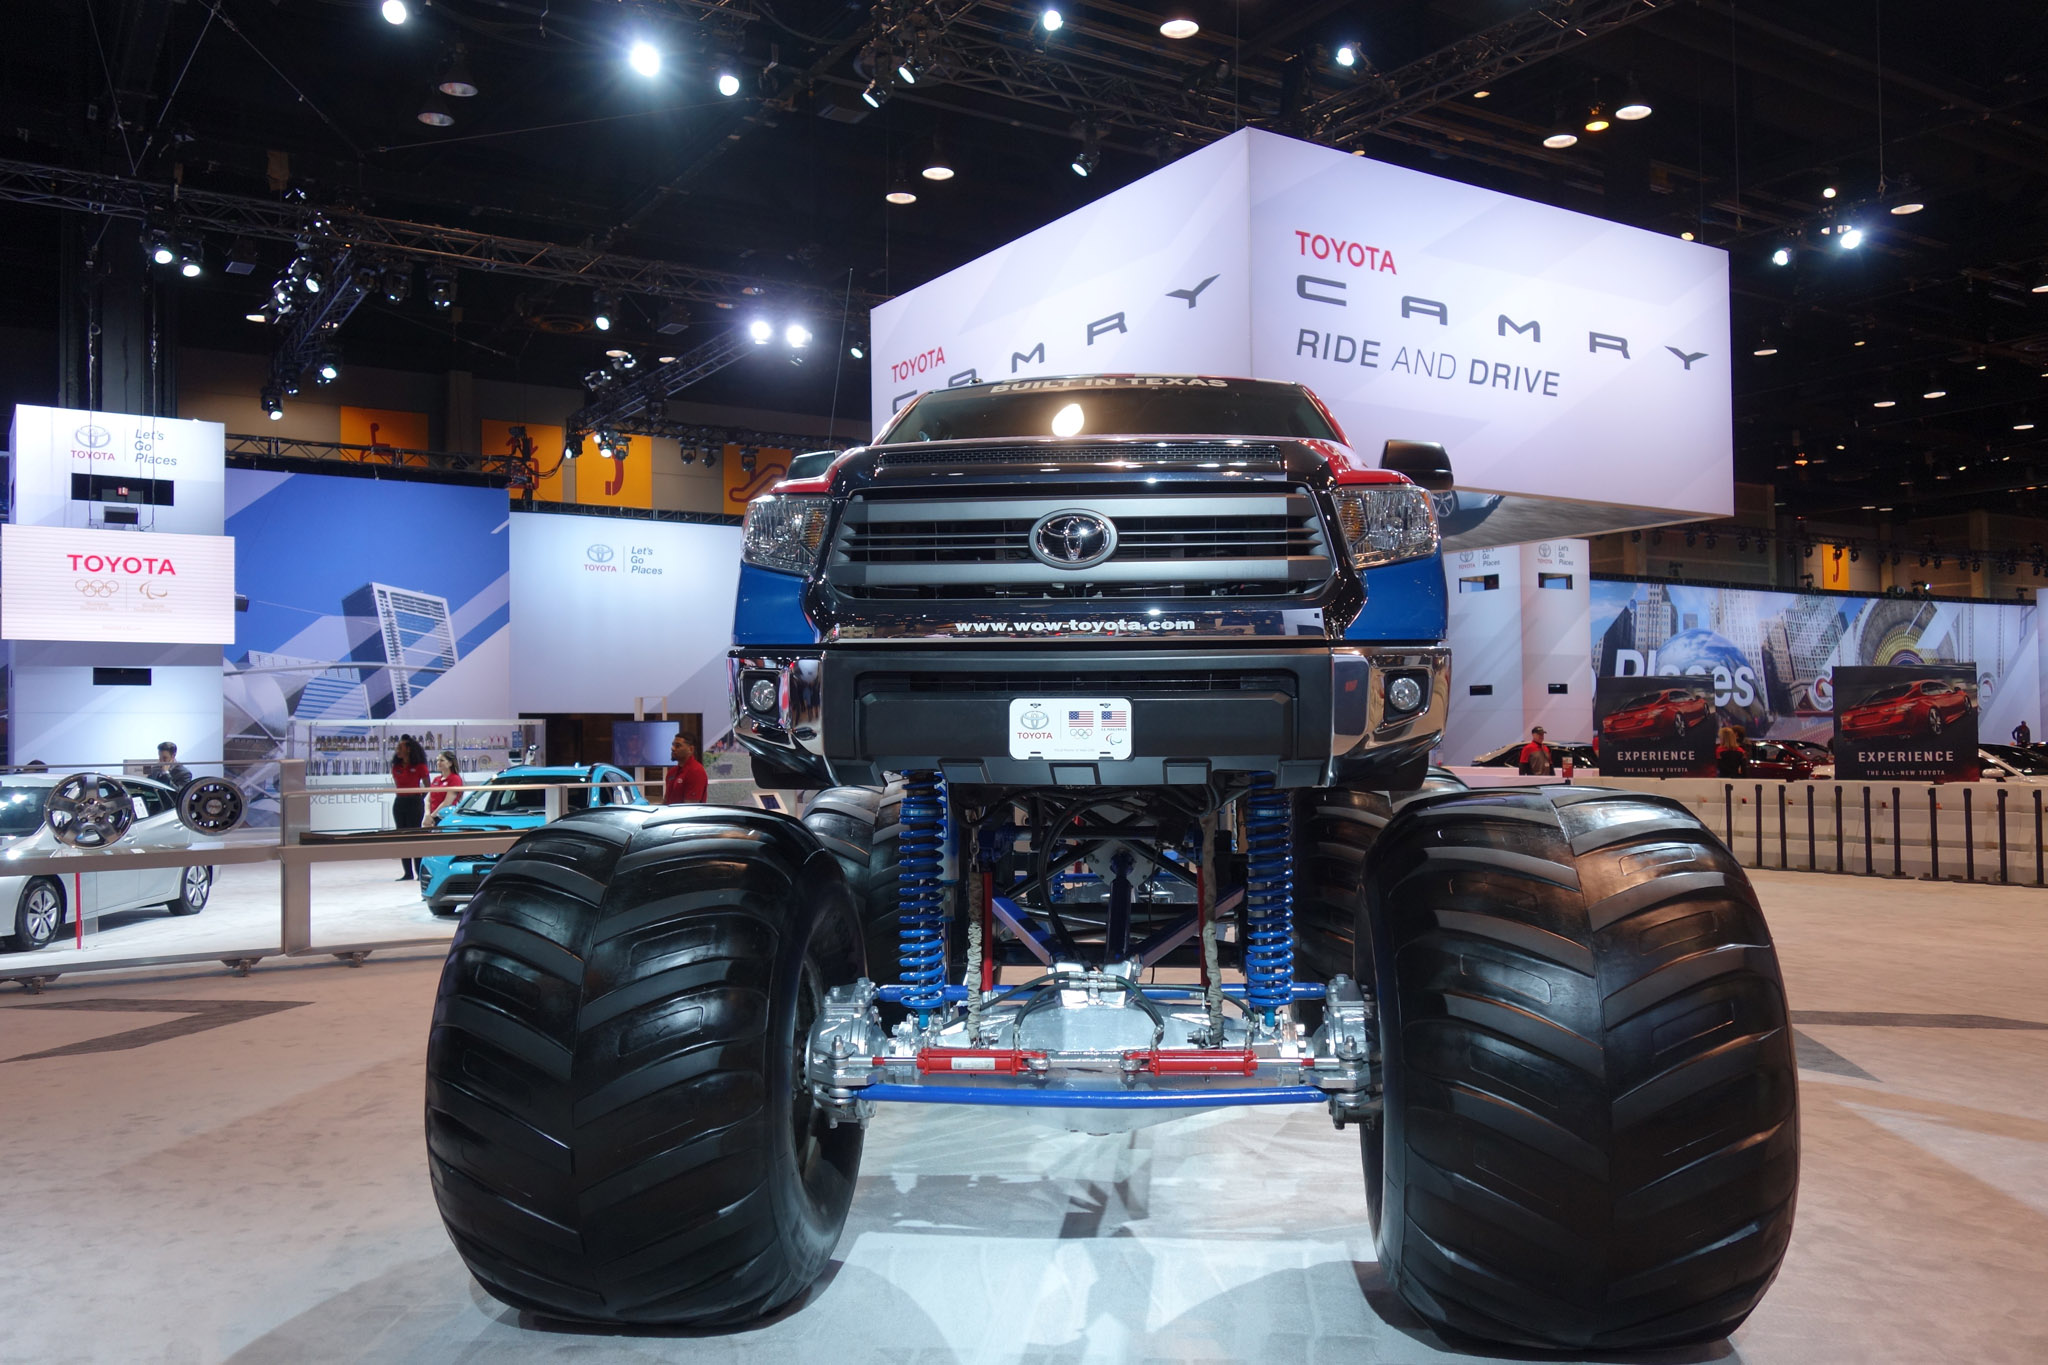 The Ford F Raptor is a lot of machine. In addition to the truck's massive footprint, it has extreme off-road racing shocks, a horsepower turbocharged V6, and a quick-shifting speed.